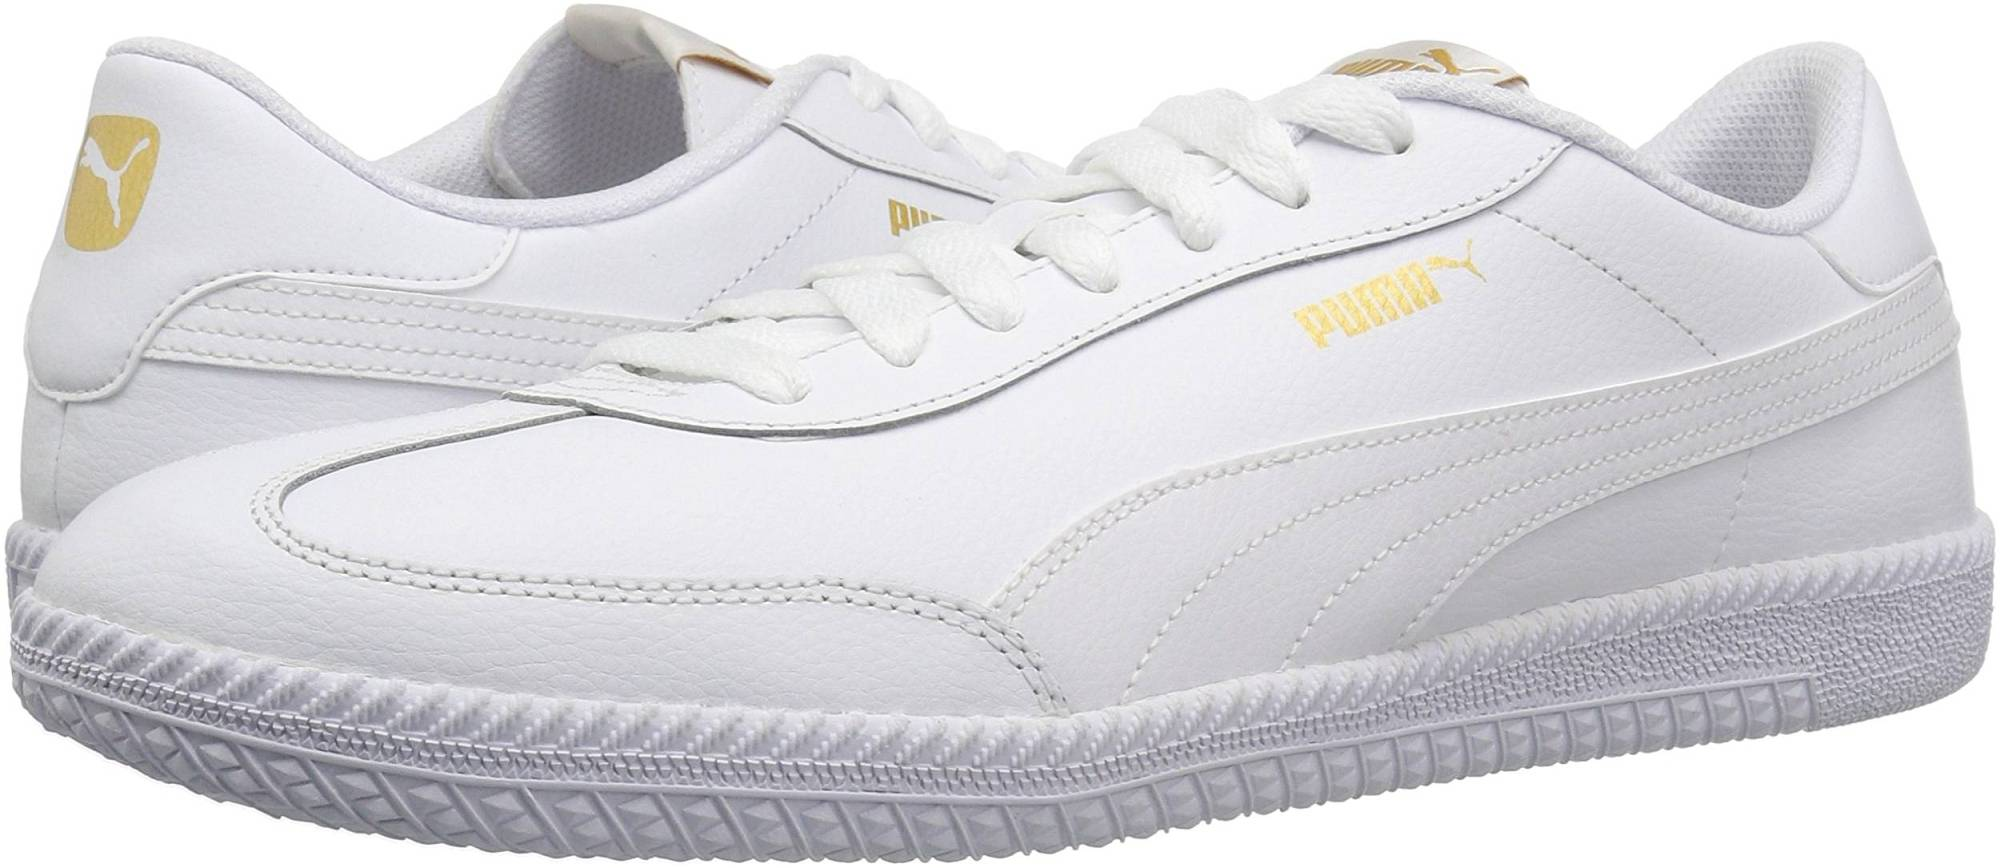 Puma Astro Cup Leather – Shoes Reviews